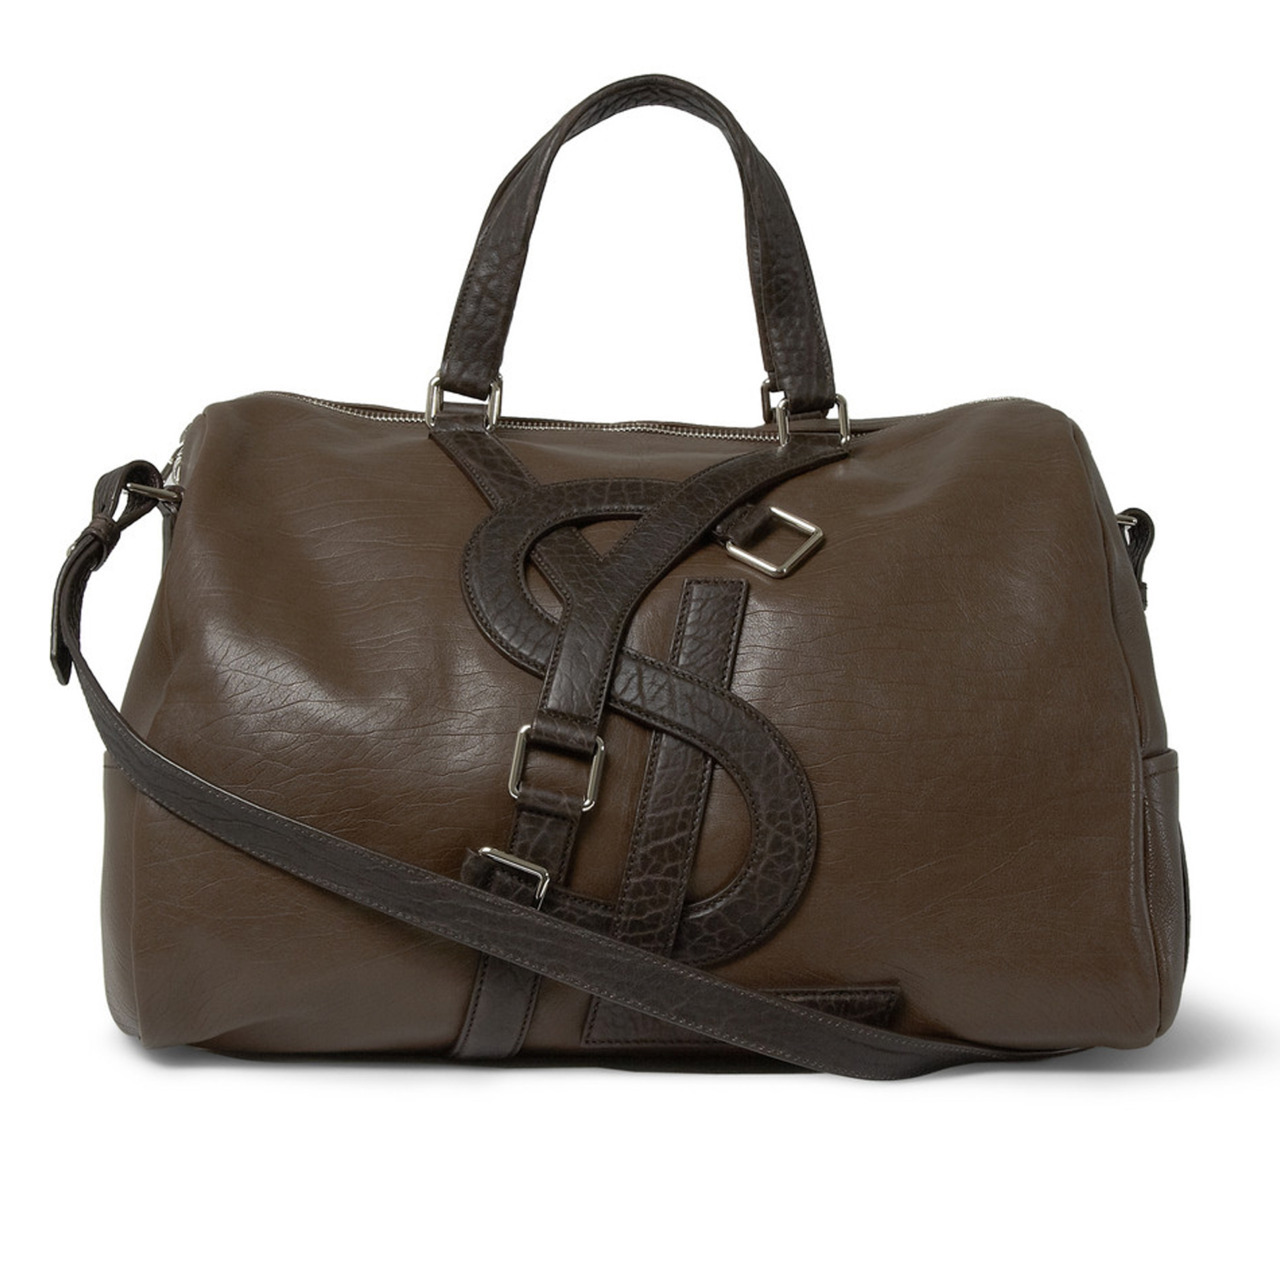 Our pick of this week's new arrivals? This holdall from YSL. Lugging your day's load never looked so good